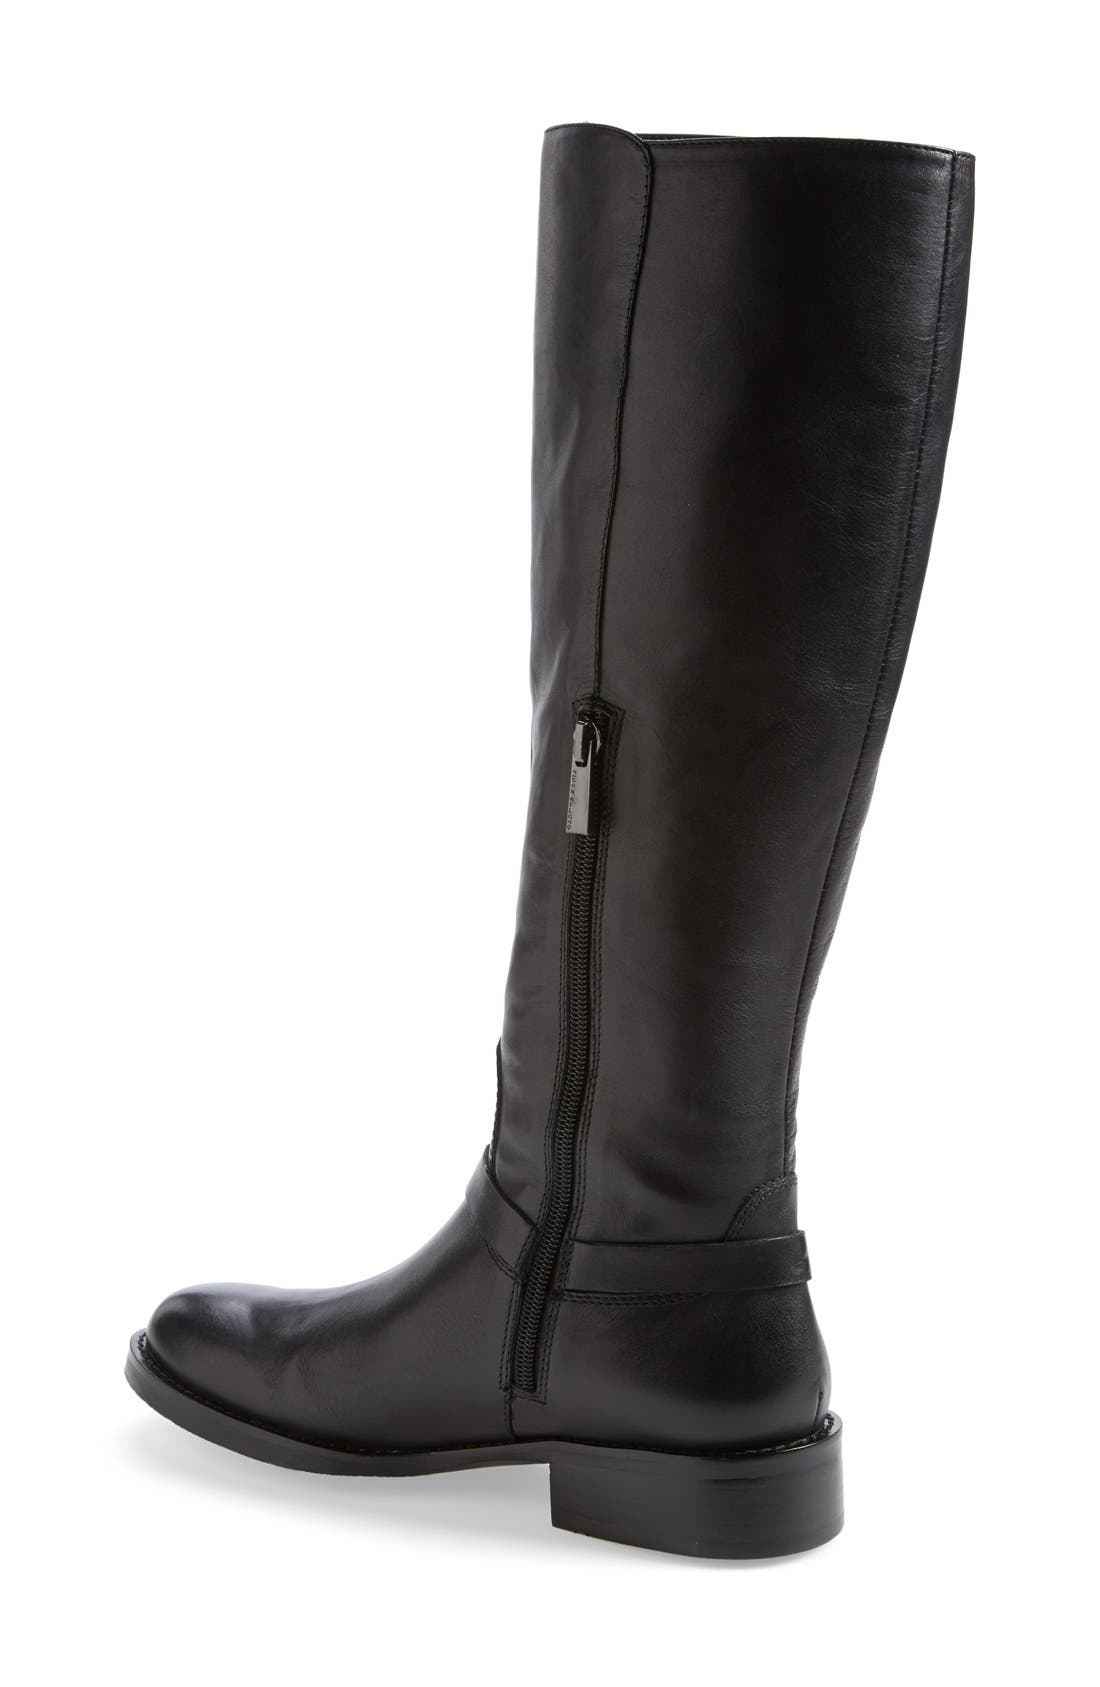 VINCE CAMUTO,                             'Farren' Riding Boot,                             Alternate thumbnail 2, color,                             001